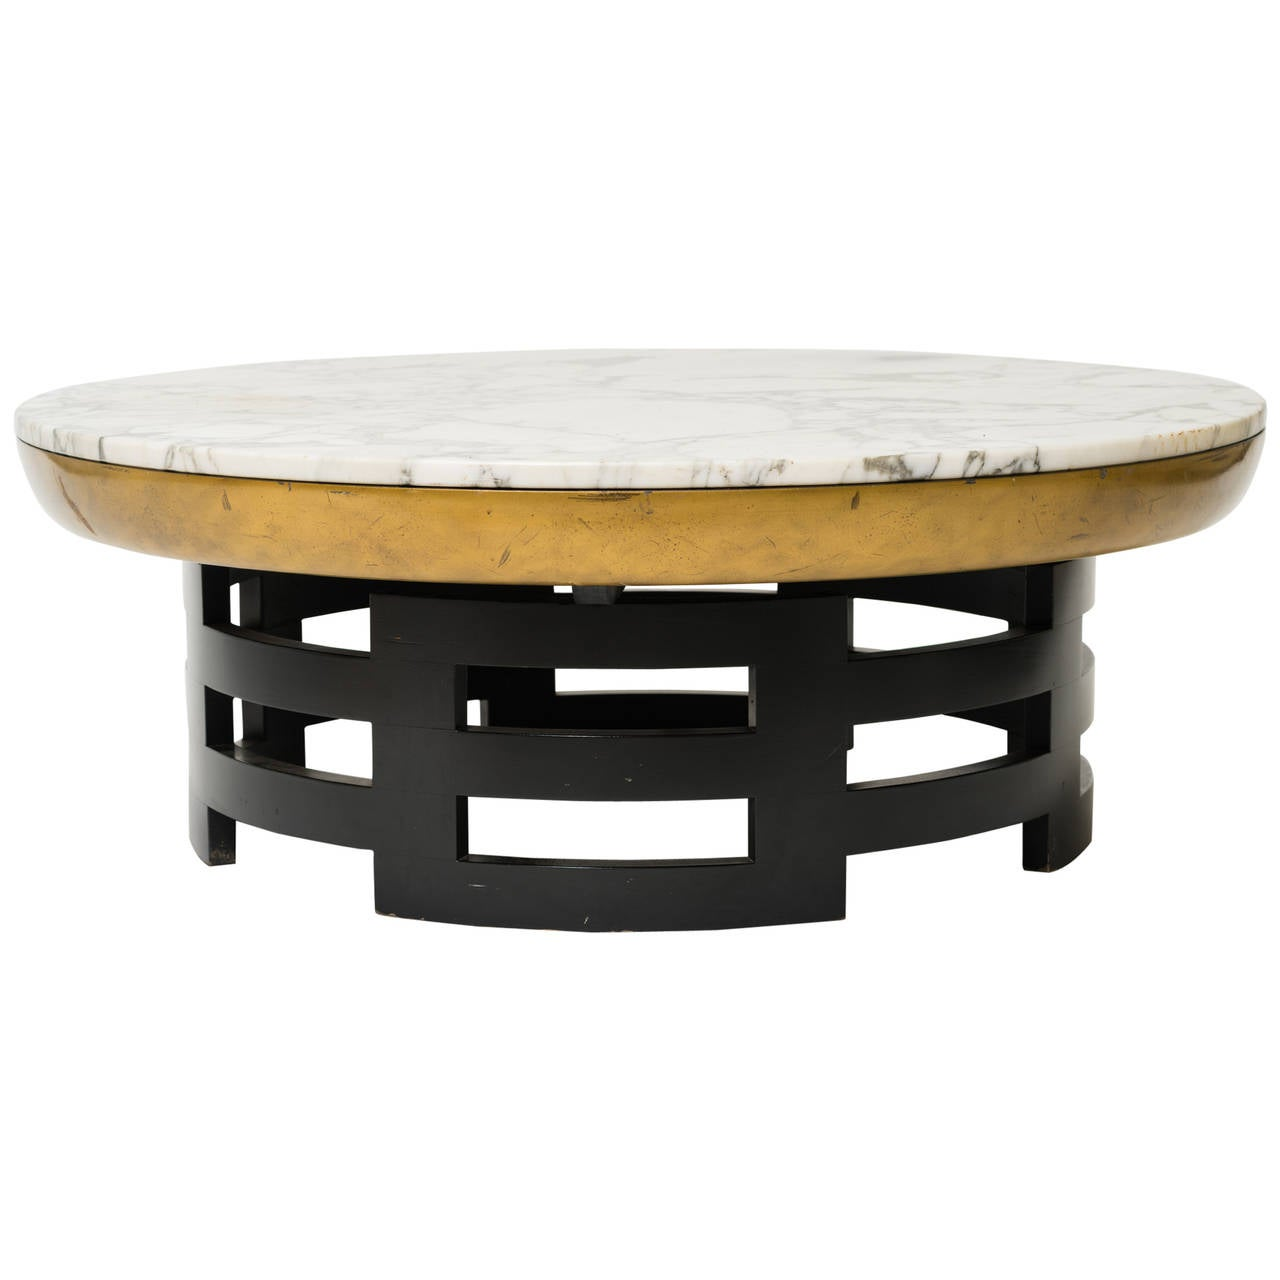 Kittinger lotus coffee table with marble top at 1stdibs Coffee tables with marble tops